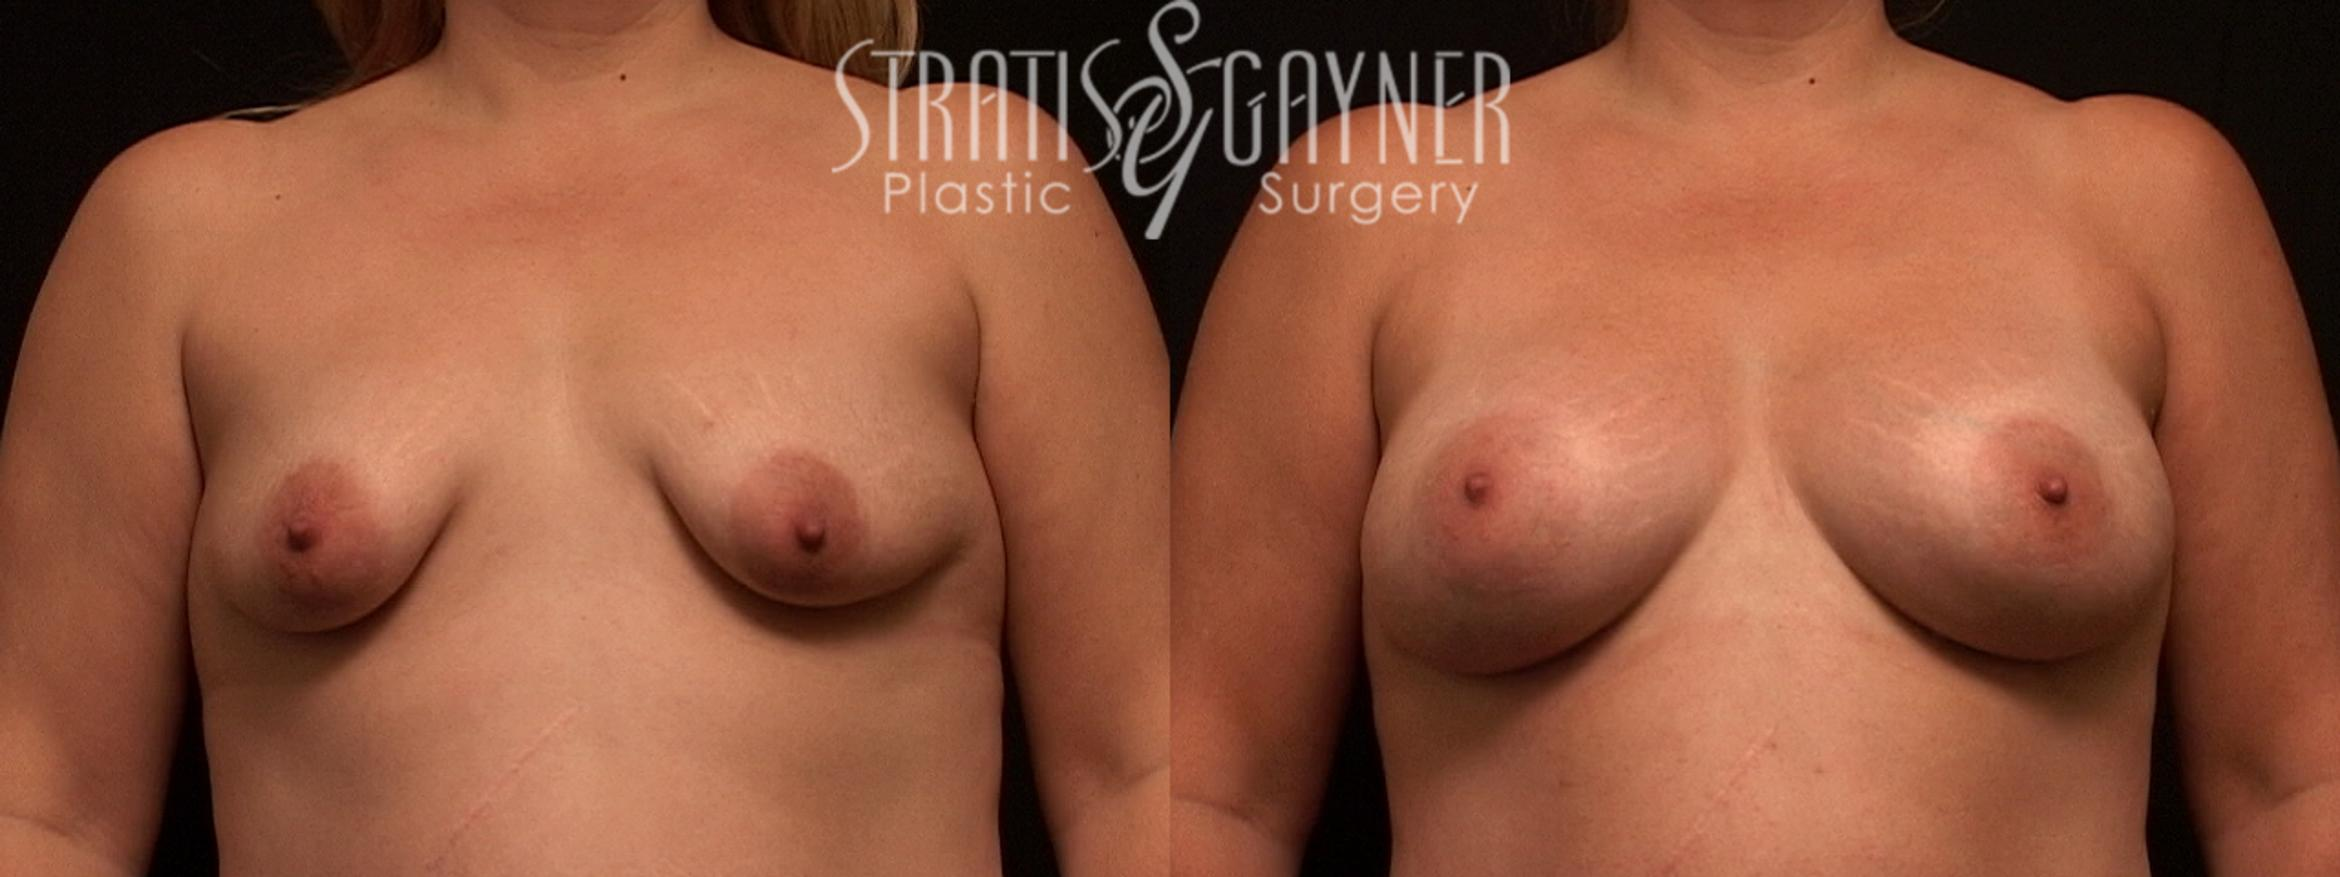 Mommy Makeover Case 48 Before & After View #1 | Harrisburg, PA | Stratis Gayner Plastic Surgery